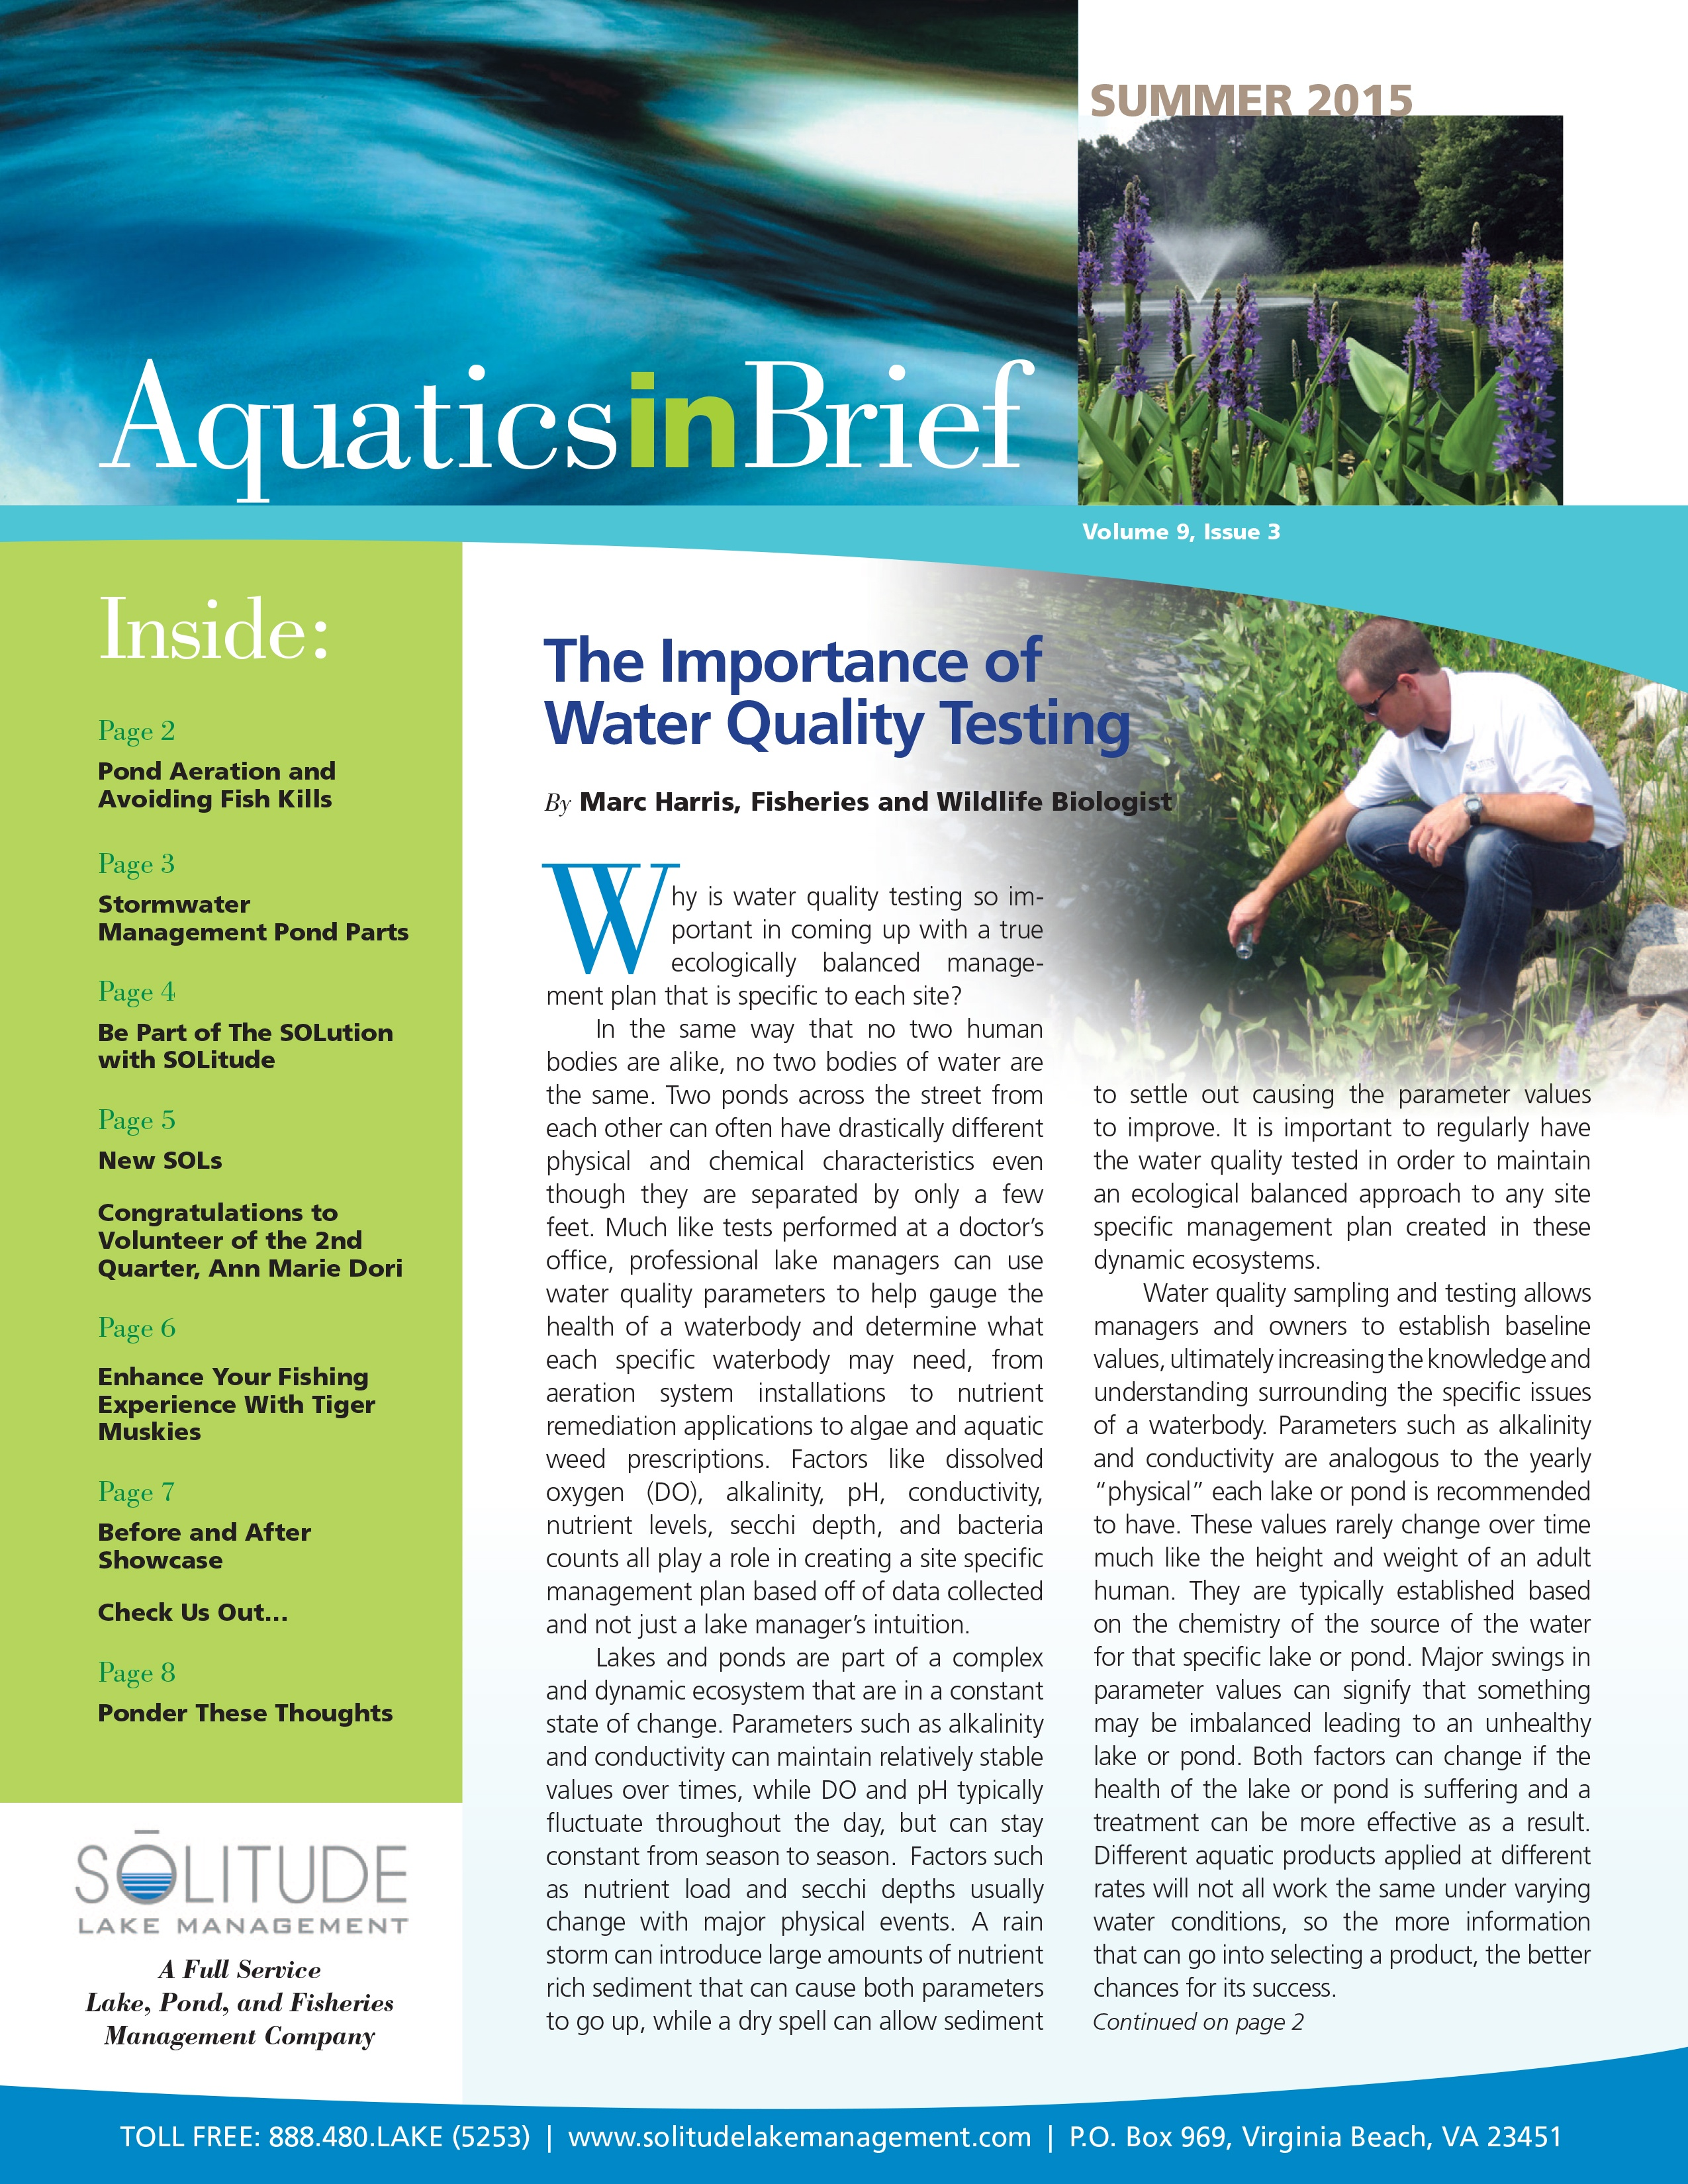 aquatics-in-brief-summer-2015